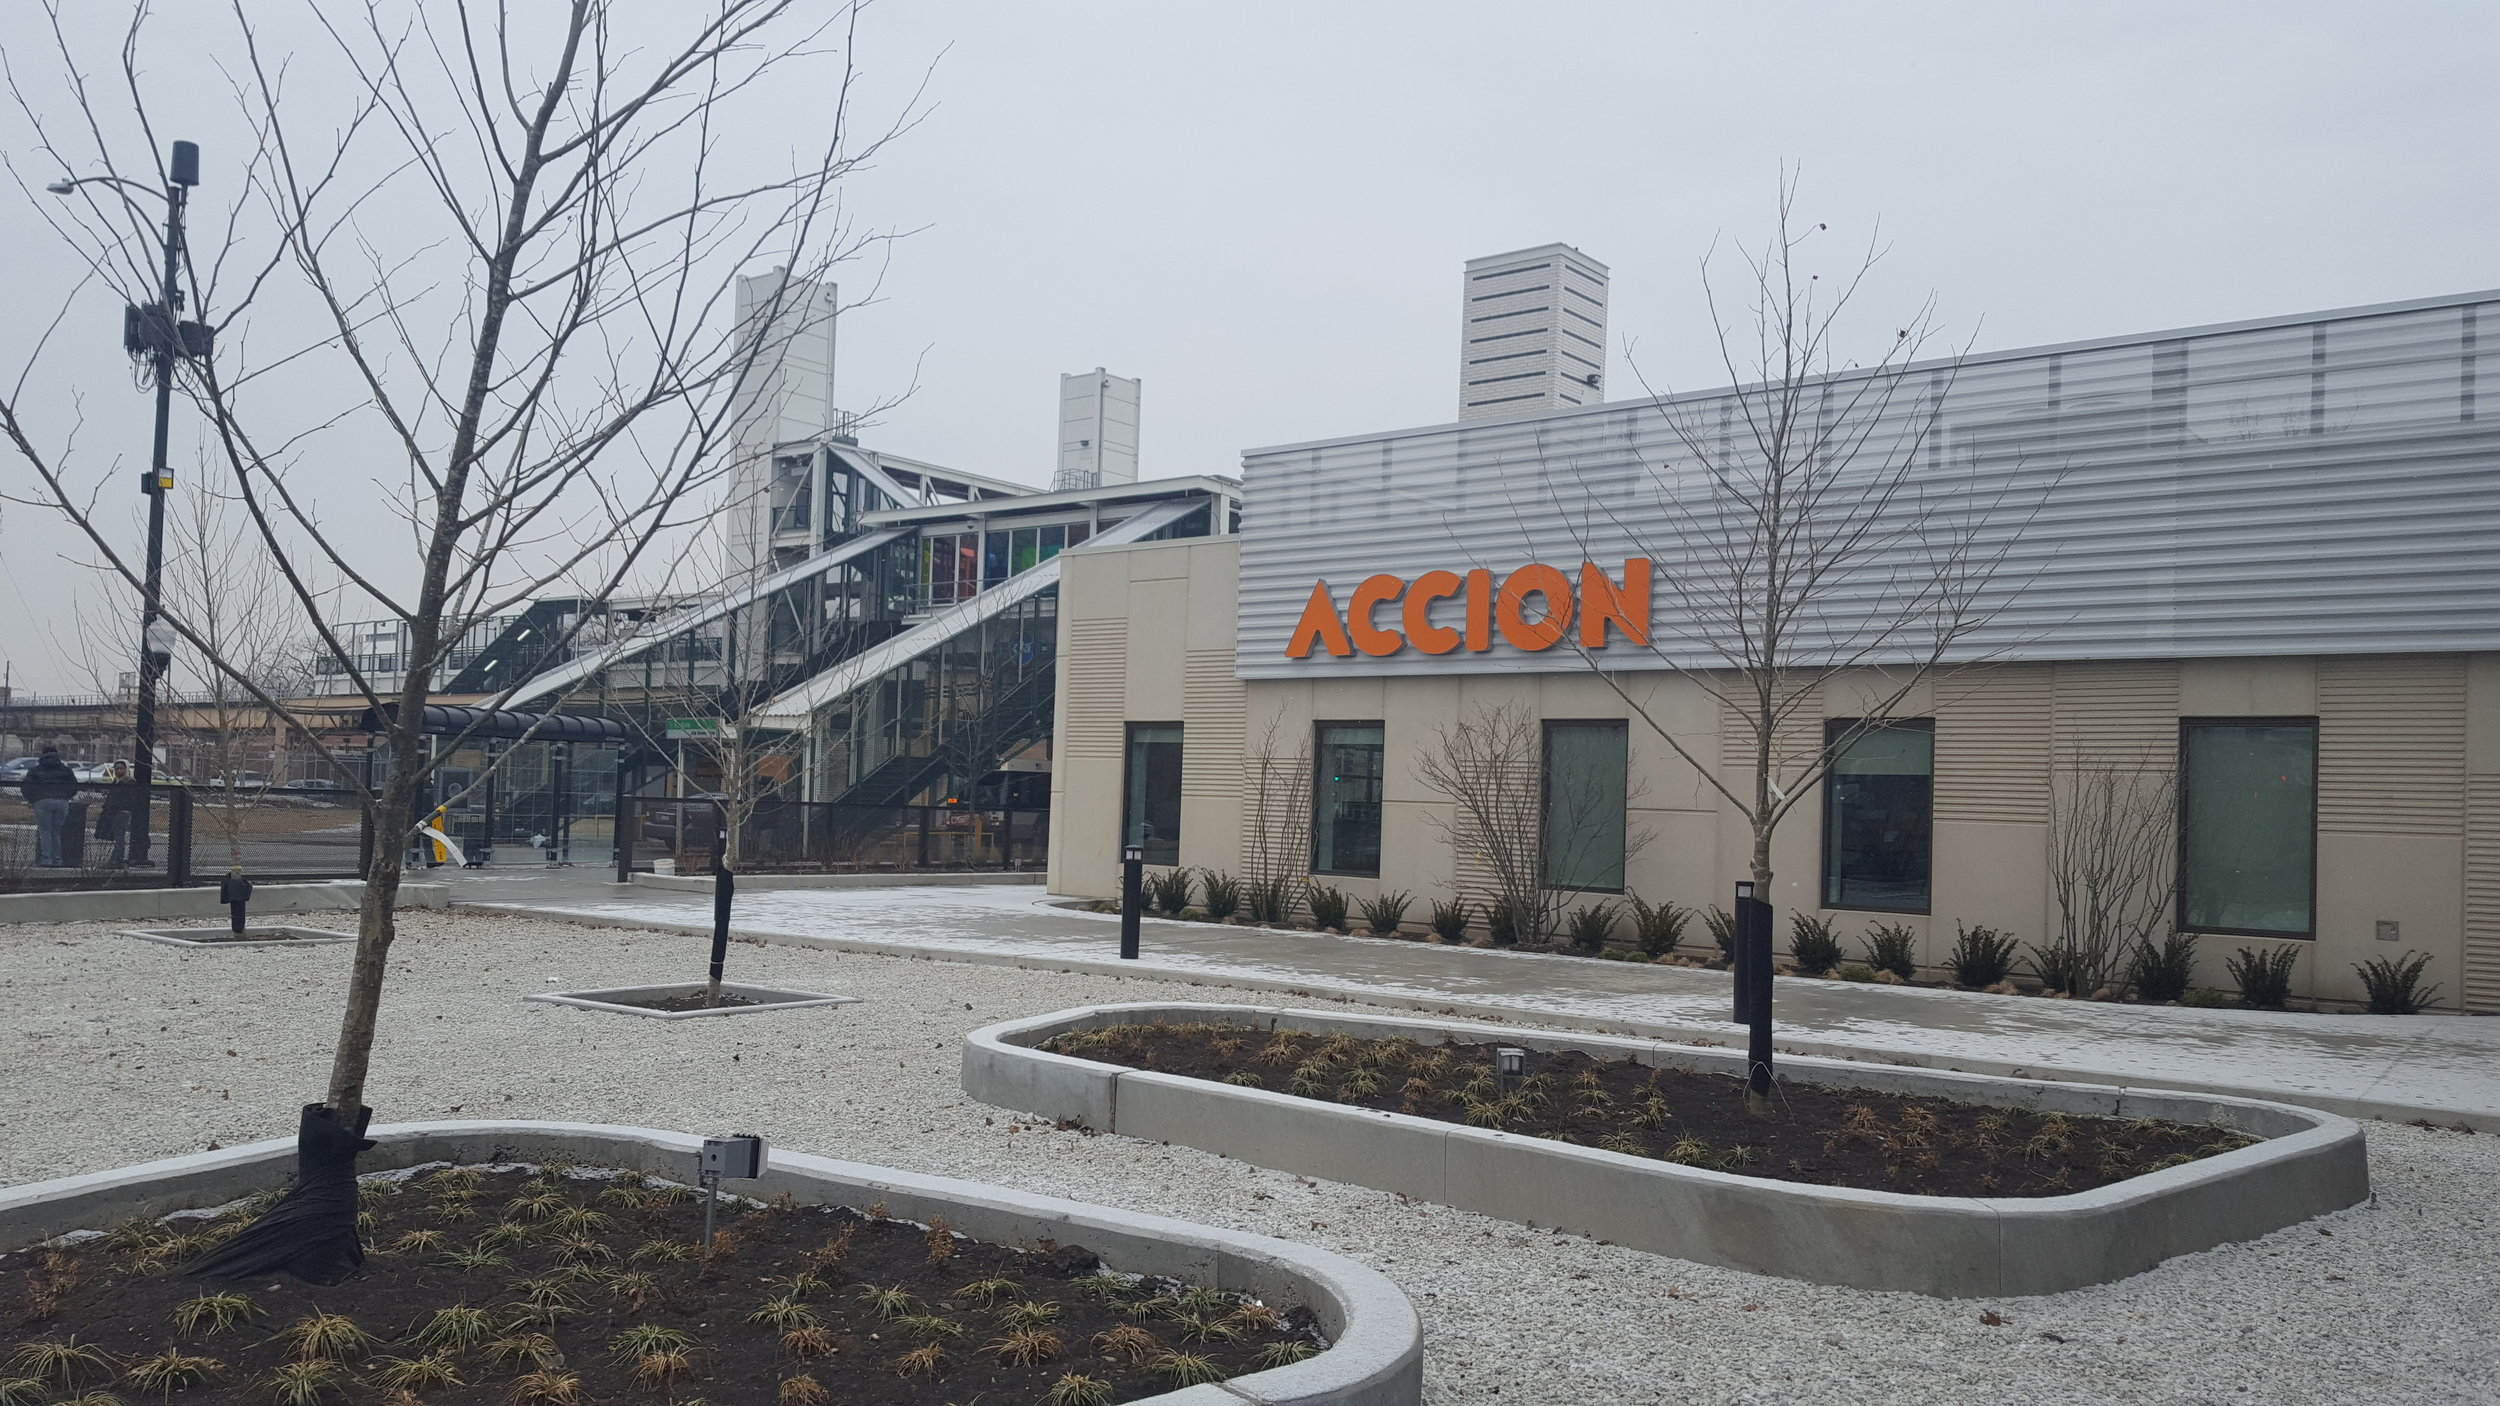 It may not look like much on a cold March morning, but The Hatchery in Chicago's Garfield Park neighborhood is an amazing effort by community and corporate partners to create a TOD that includes an urban farmer's market, local business entrepreunership opportunities in the food and beverage industries, and neighborhood economic development. https://thehatcherychicago.org/ (Photo: MZimmerman)